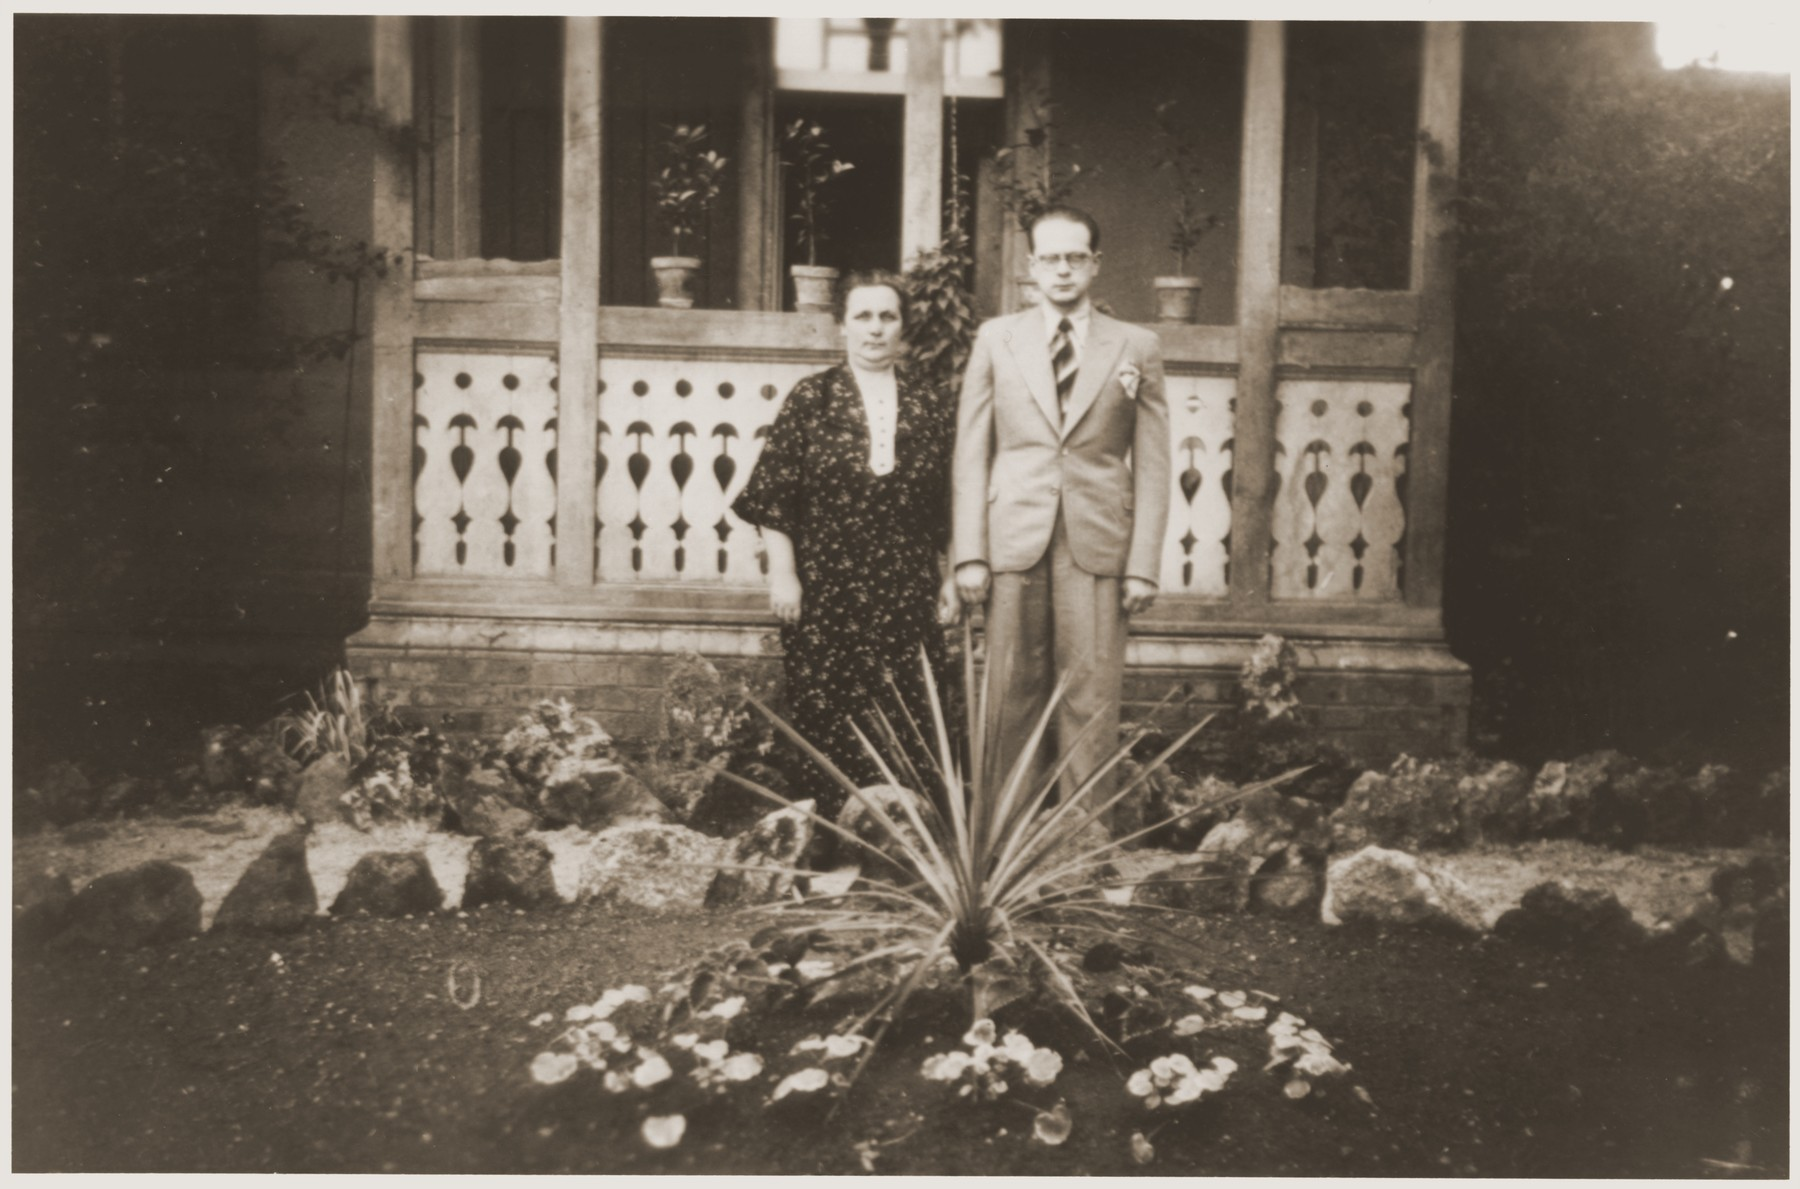 A Jewish mother and son pose in front of their home in Wollstein, Germany.  Pictured are Bertha Moster and her son, Bert.  Bertha was a distant cousin of the donor Werner Mendel.  The Mosters later emigrated to Argentina.